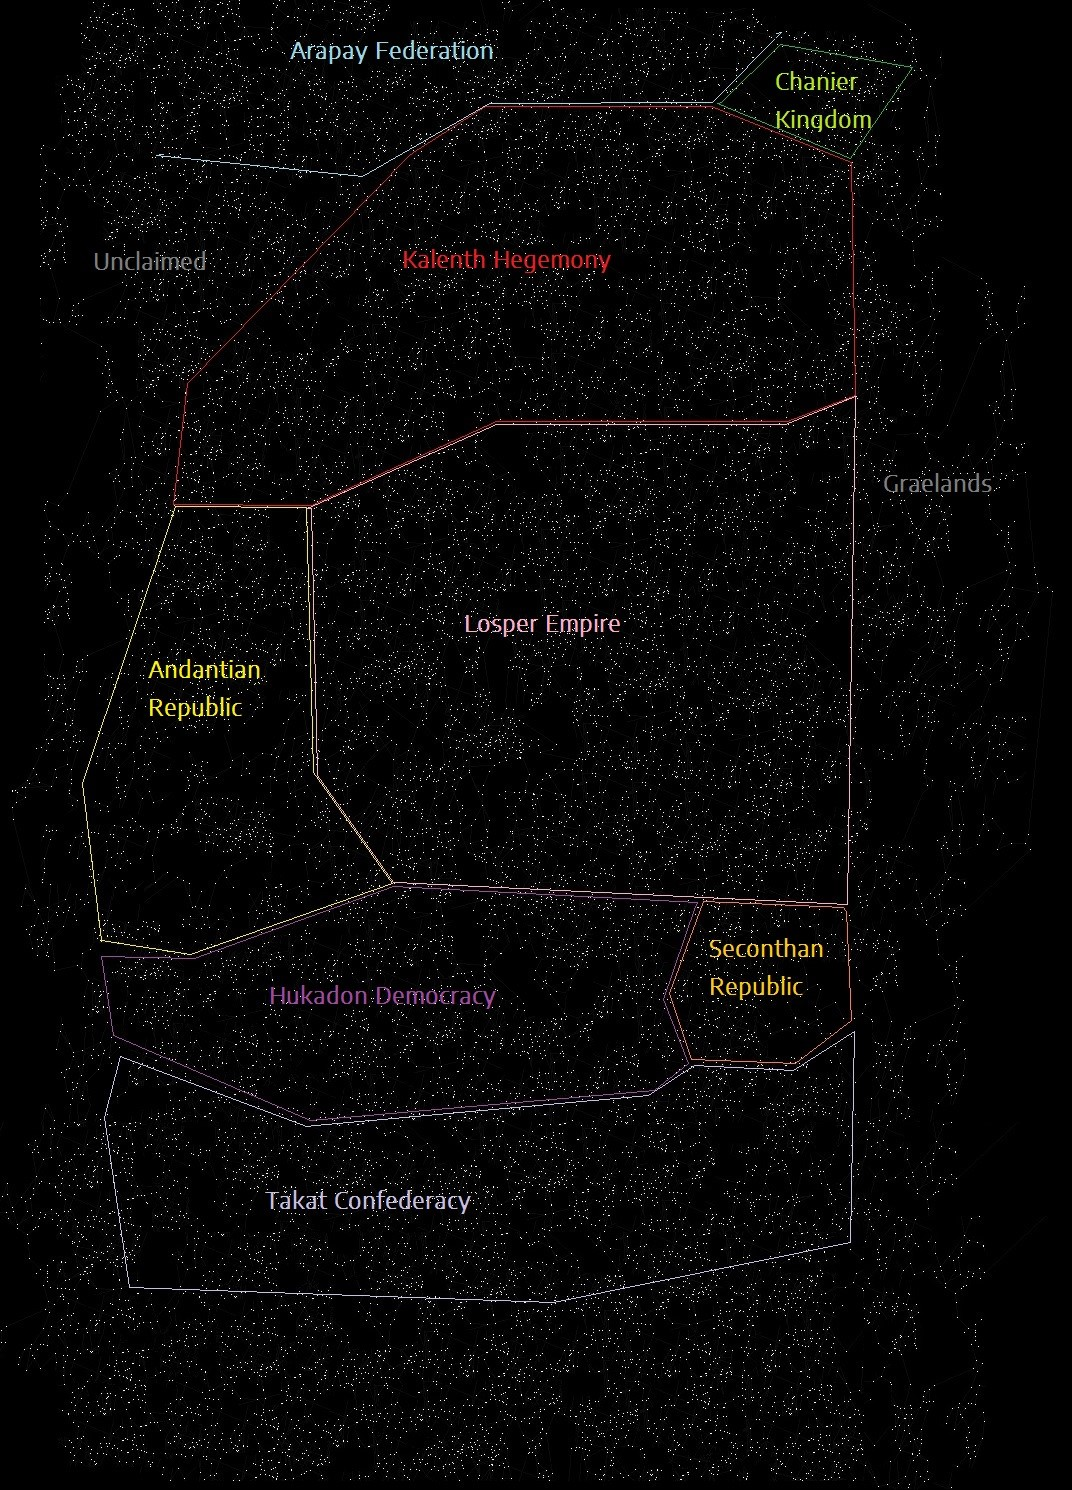 Orion Spur star map